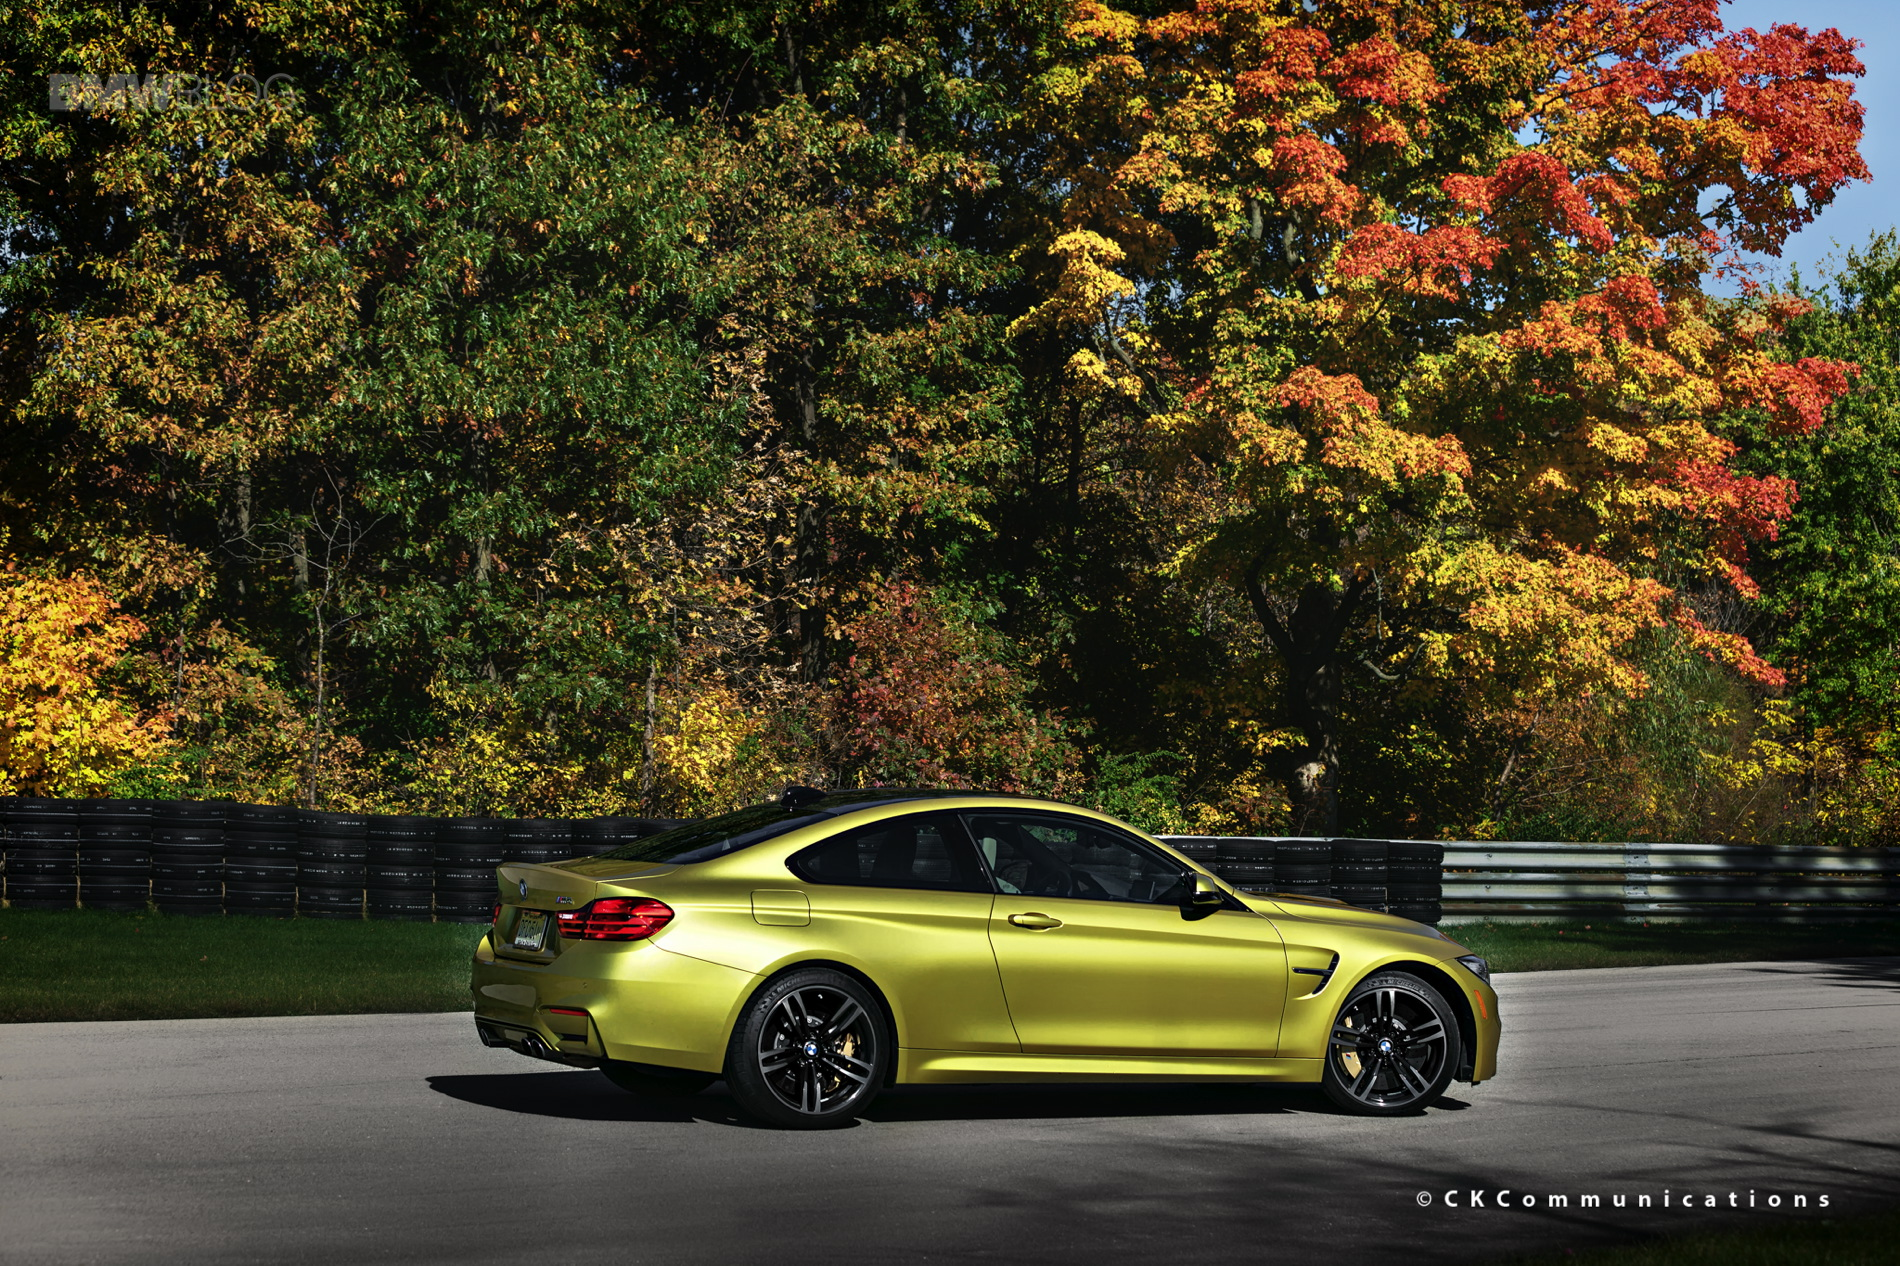 2015 bmw m4 coupe austin yellow images 01